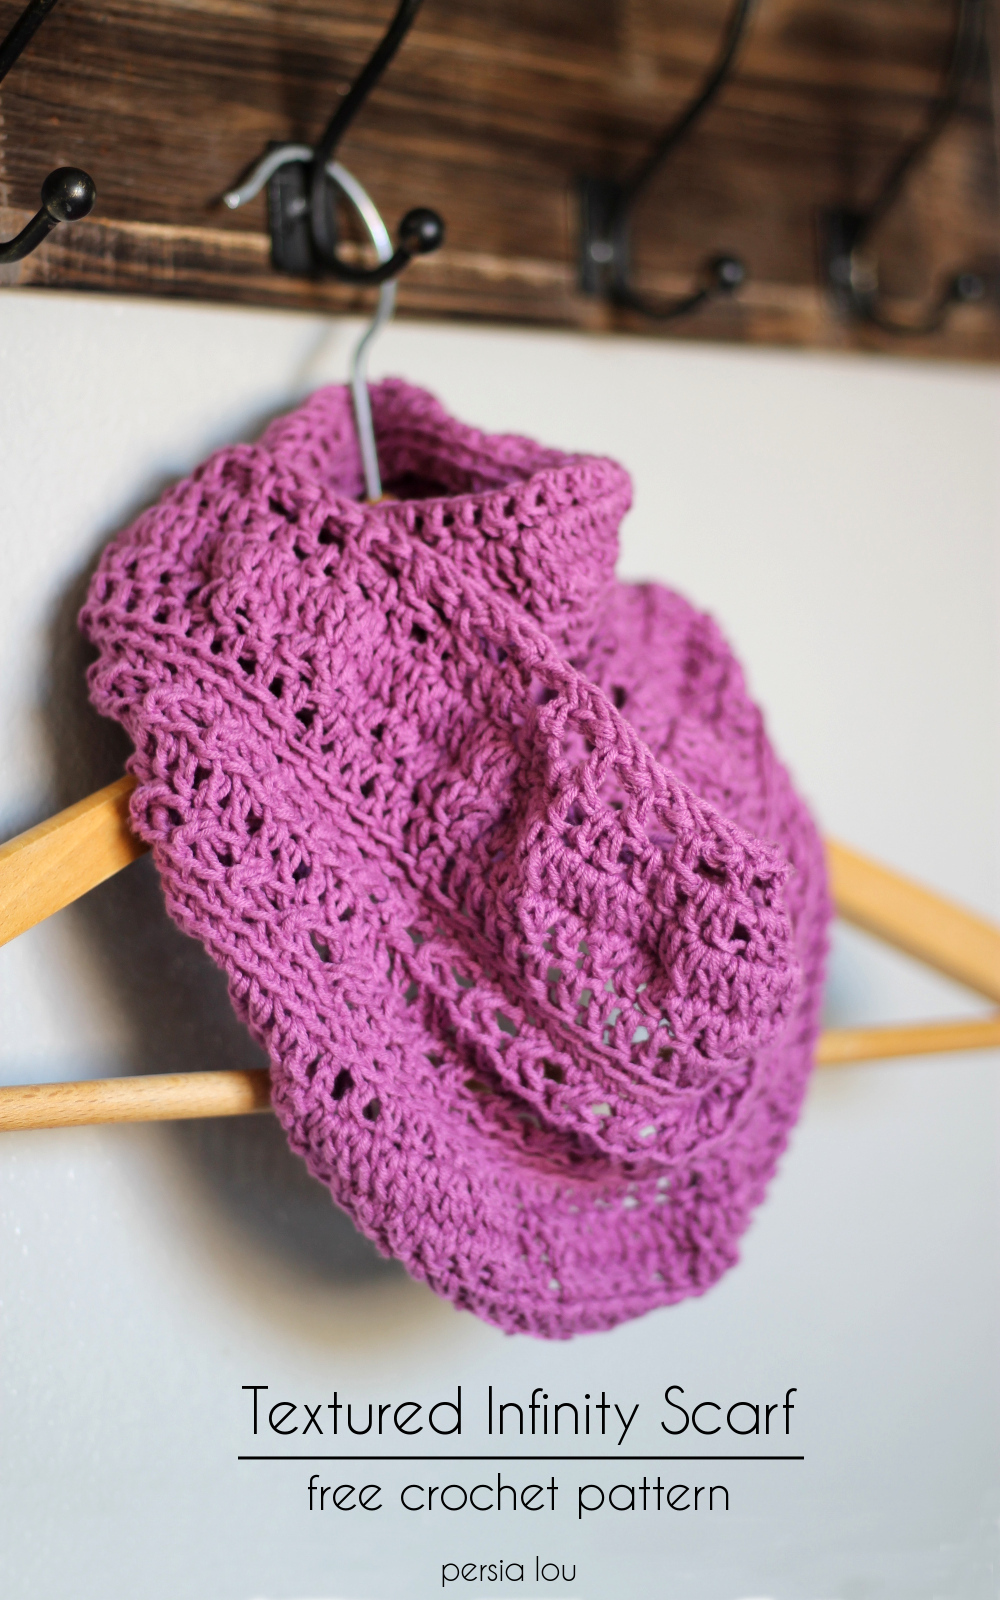 30+ Fabulous and Free Crochet Scarf Patterns -